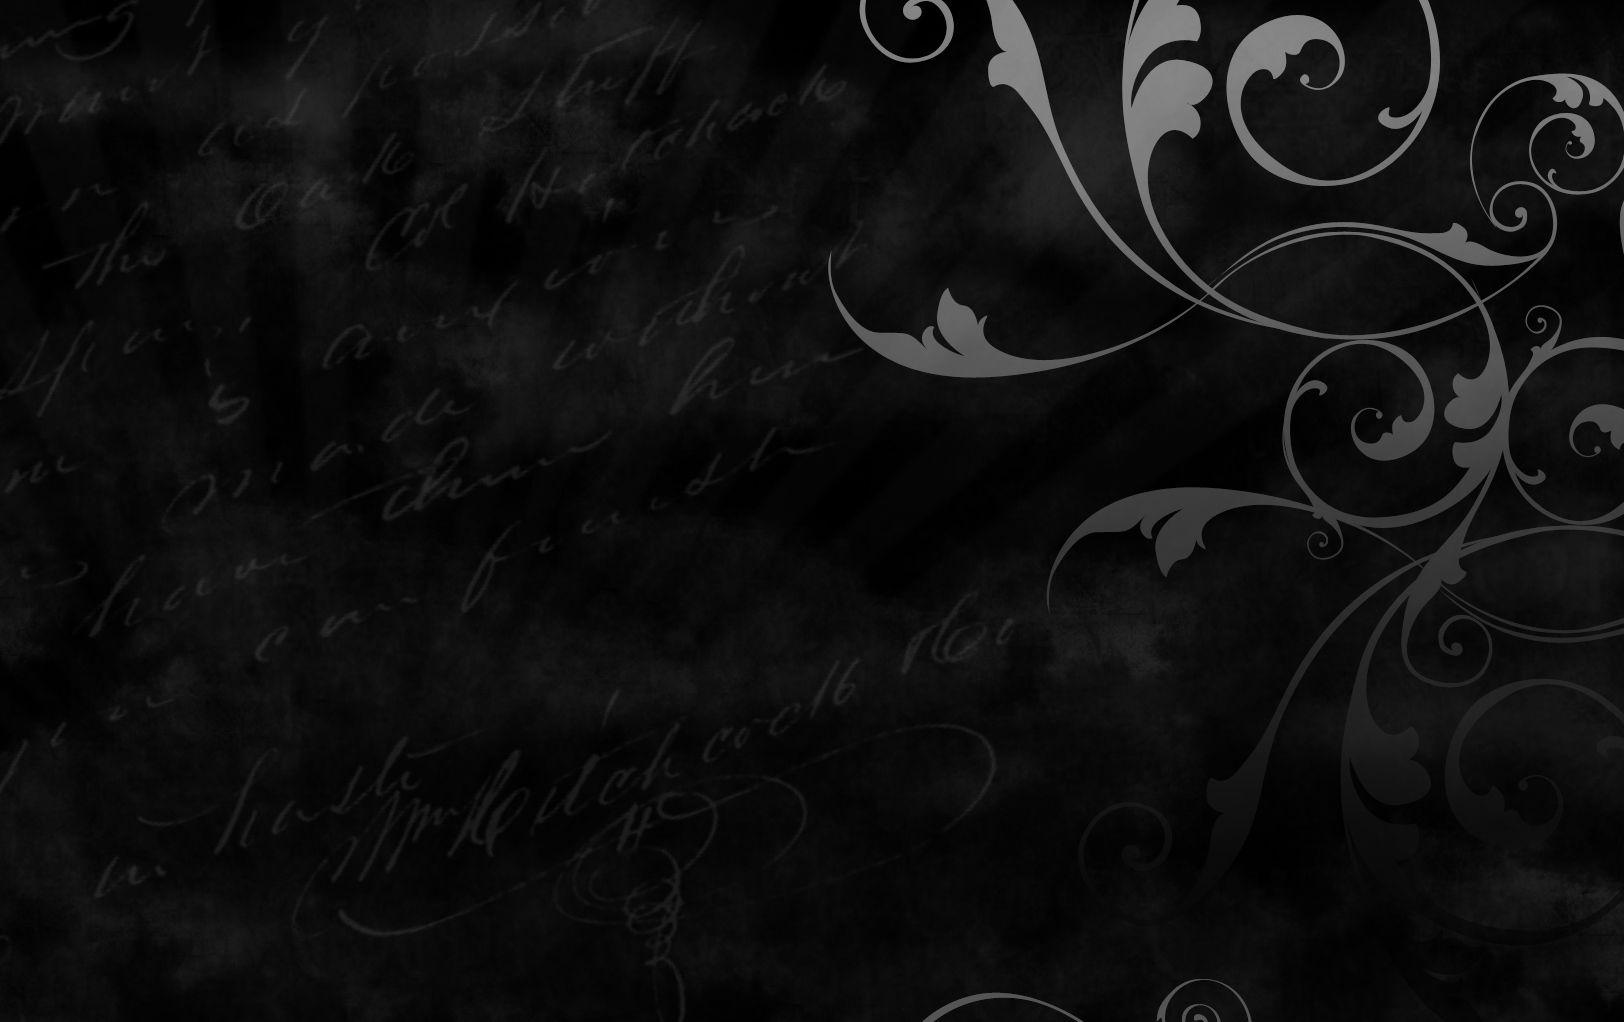 HD Wallpapers Abstract Black Wallpaper Free Download 2014 Image .